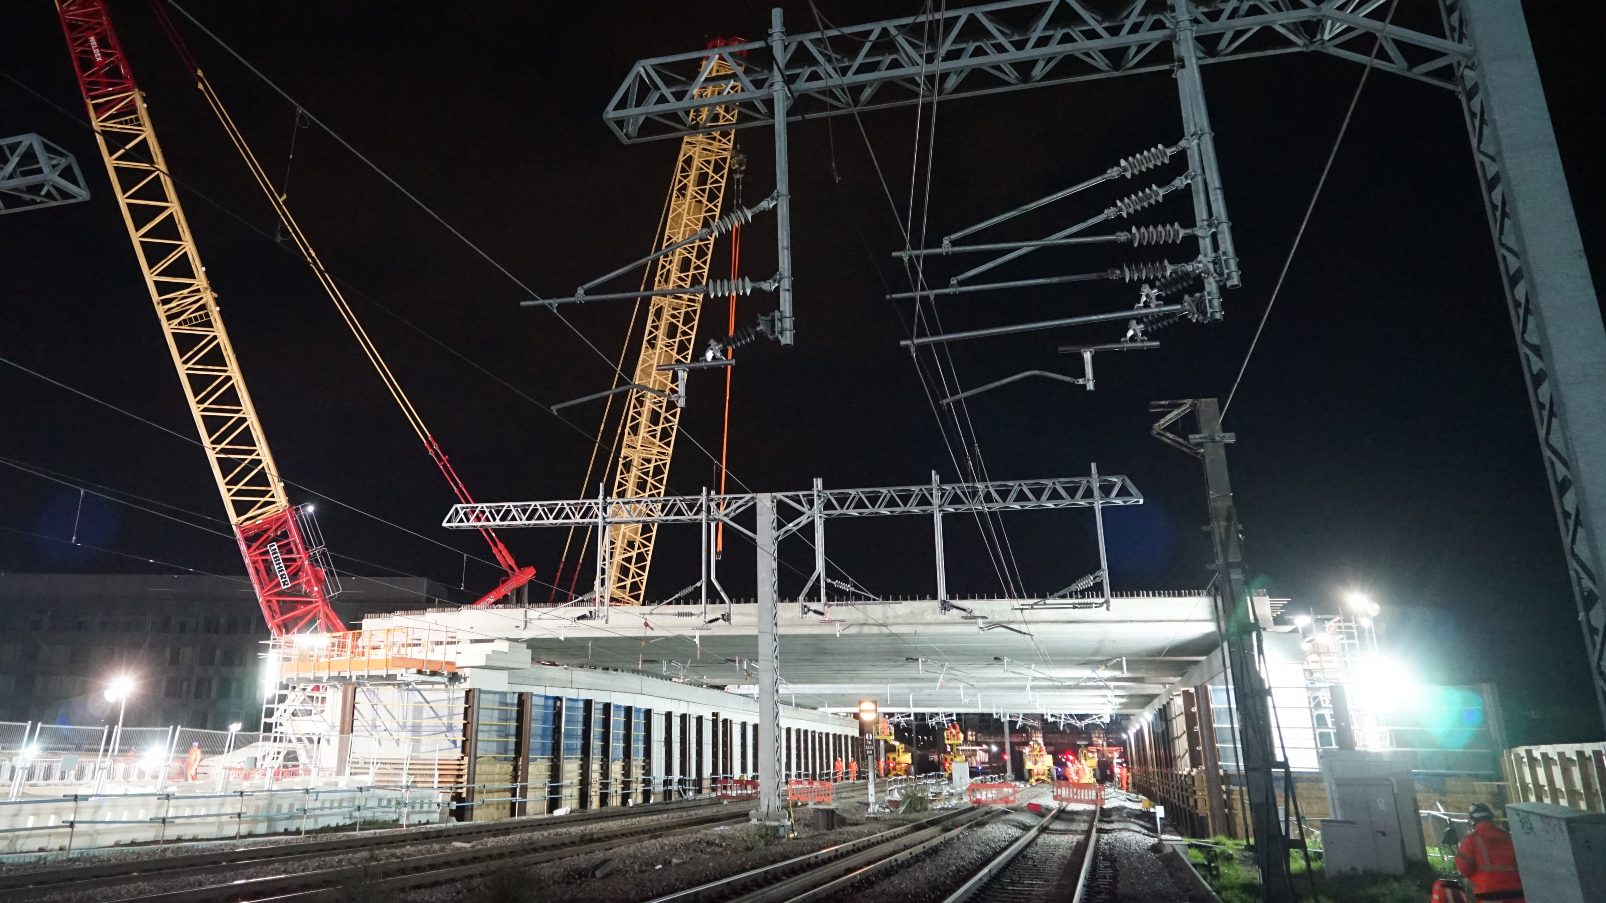 Network Rail Bletchley flyover rebuild early May 2021.